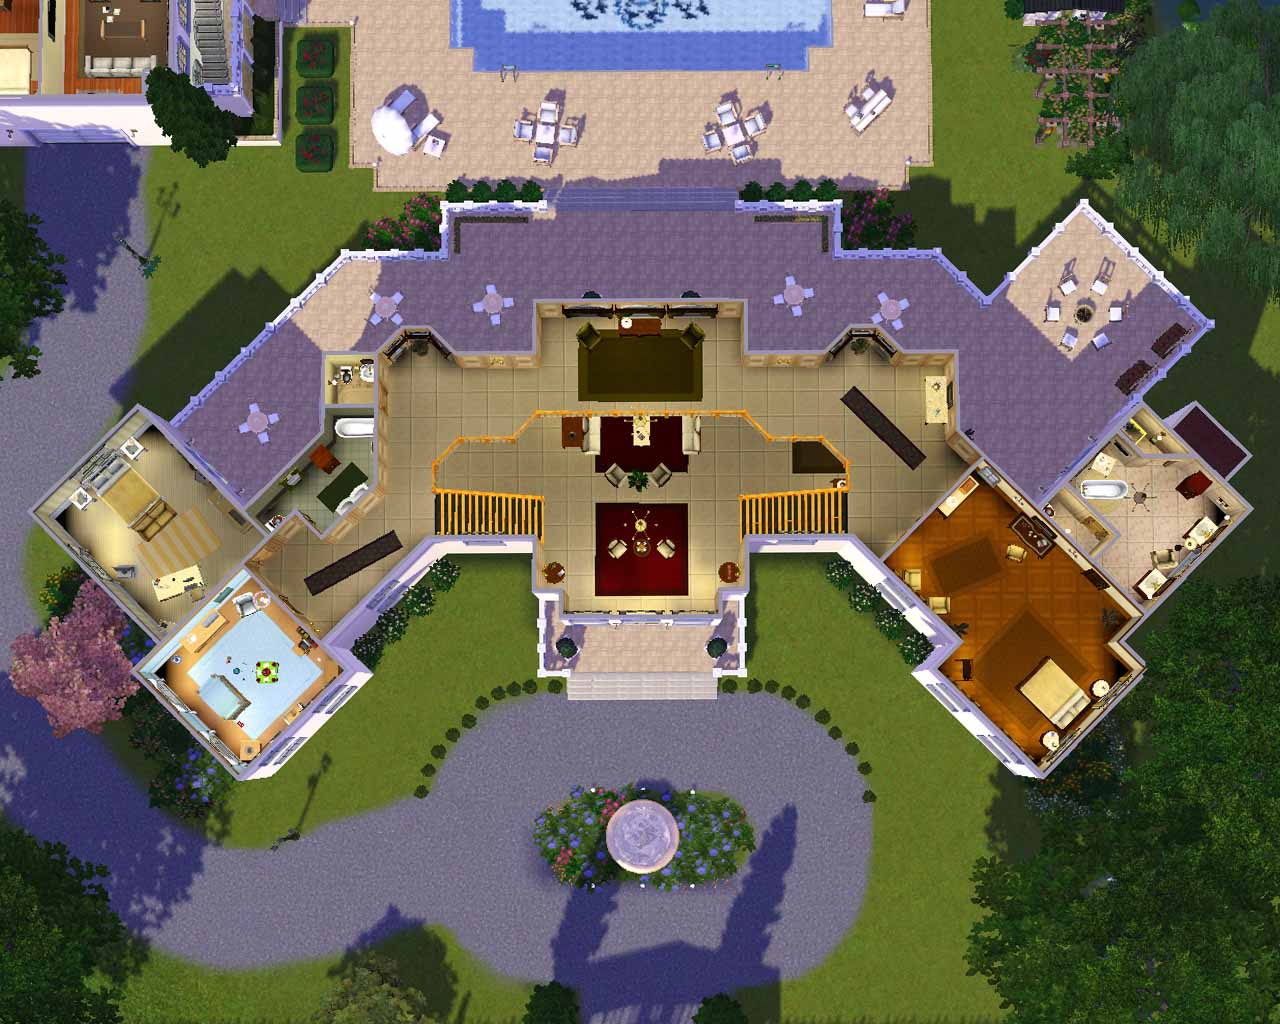 Sims 3 Modern Mansion Floor Plans: 27 Sims 3 Floorplans Ideas - Building Plans Online